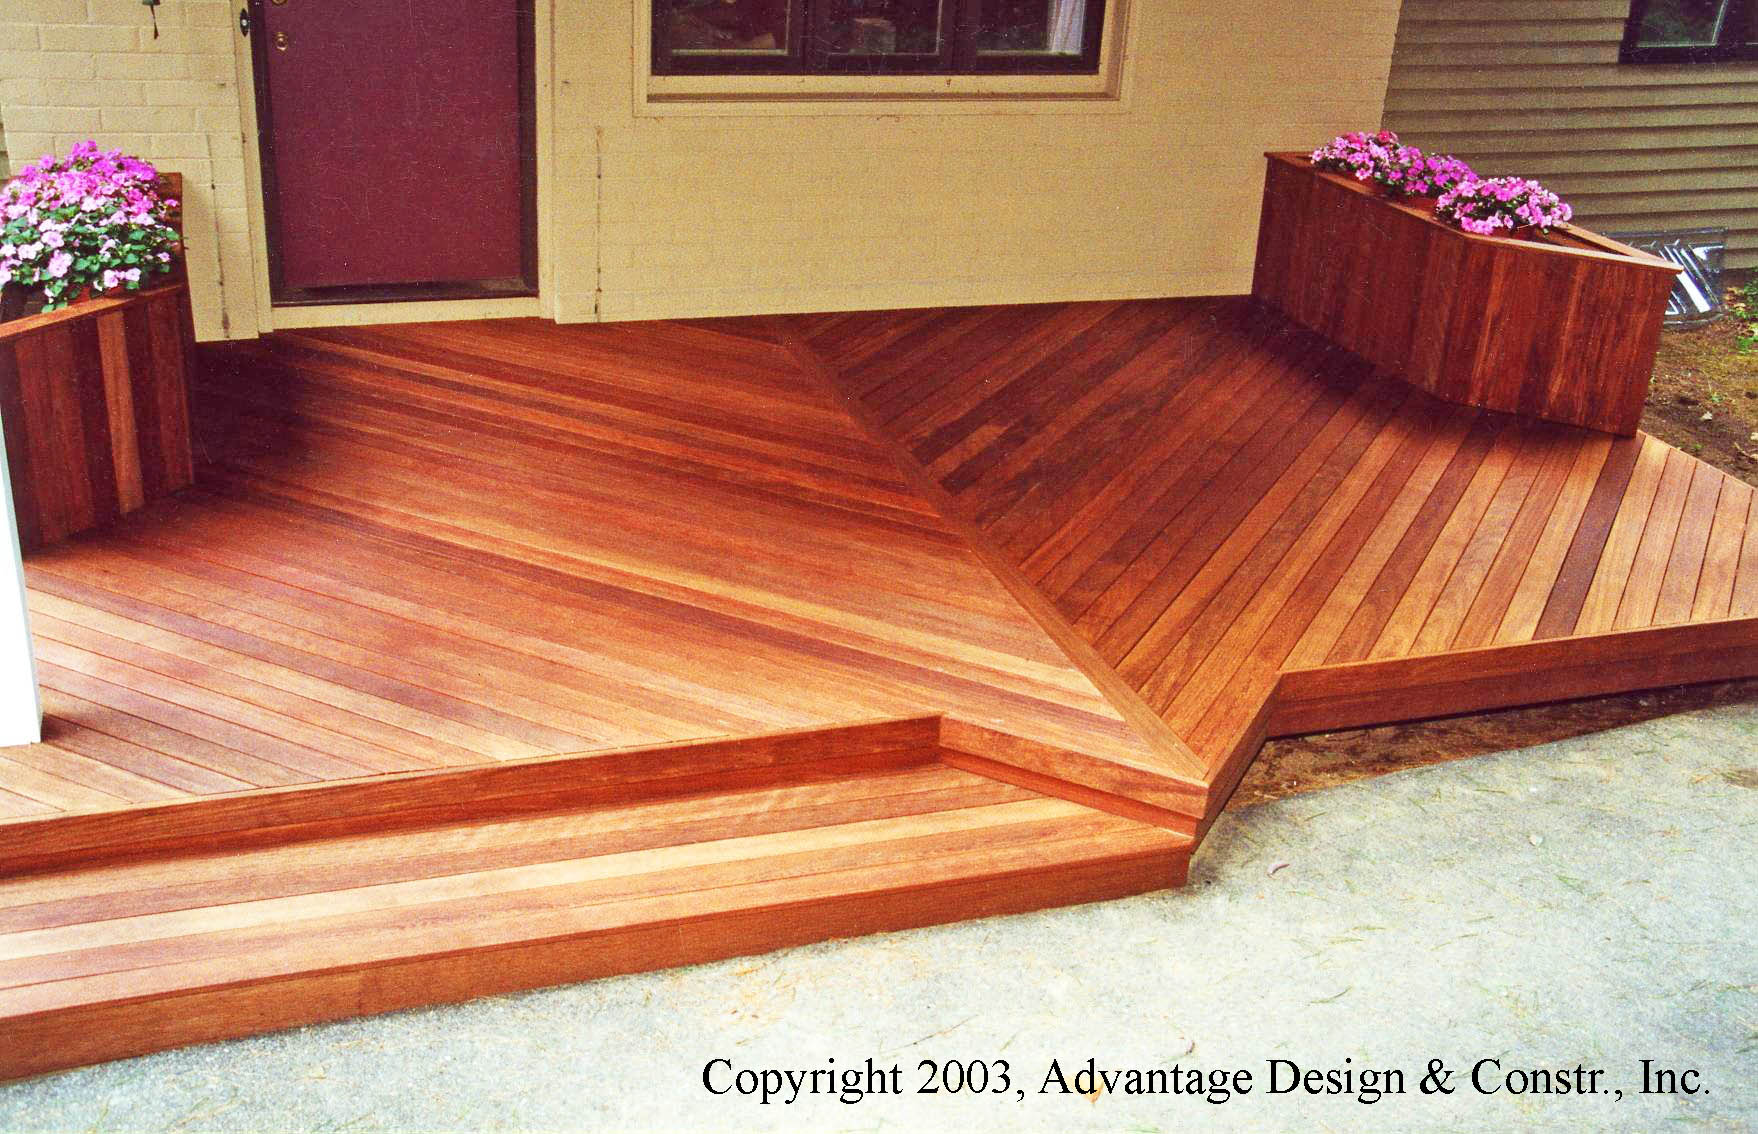 Mahogany is a great wood for outdoor decks be it cambara mahogany from south america or meranti mahogany from indonesia or the philippines